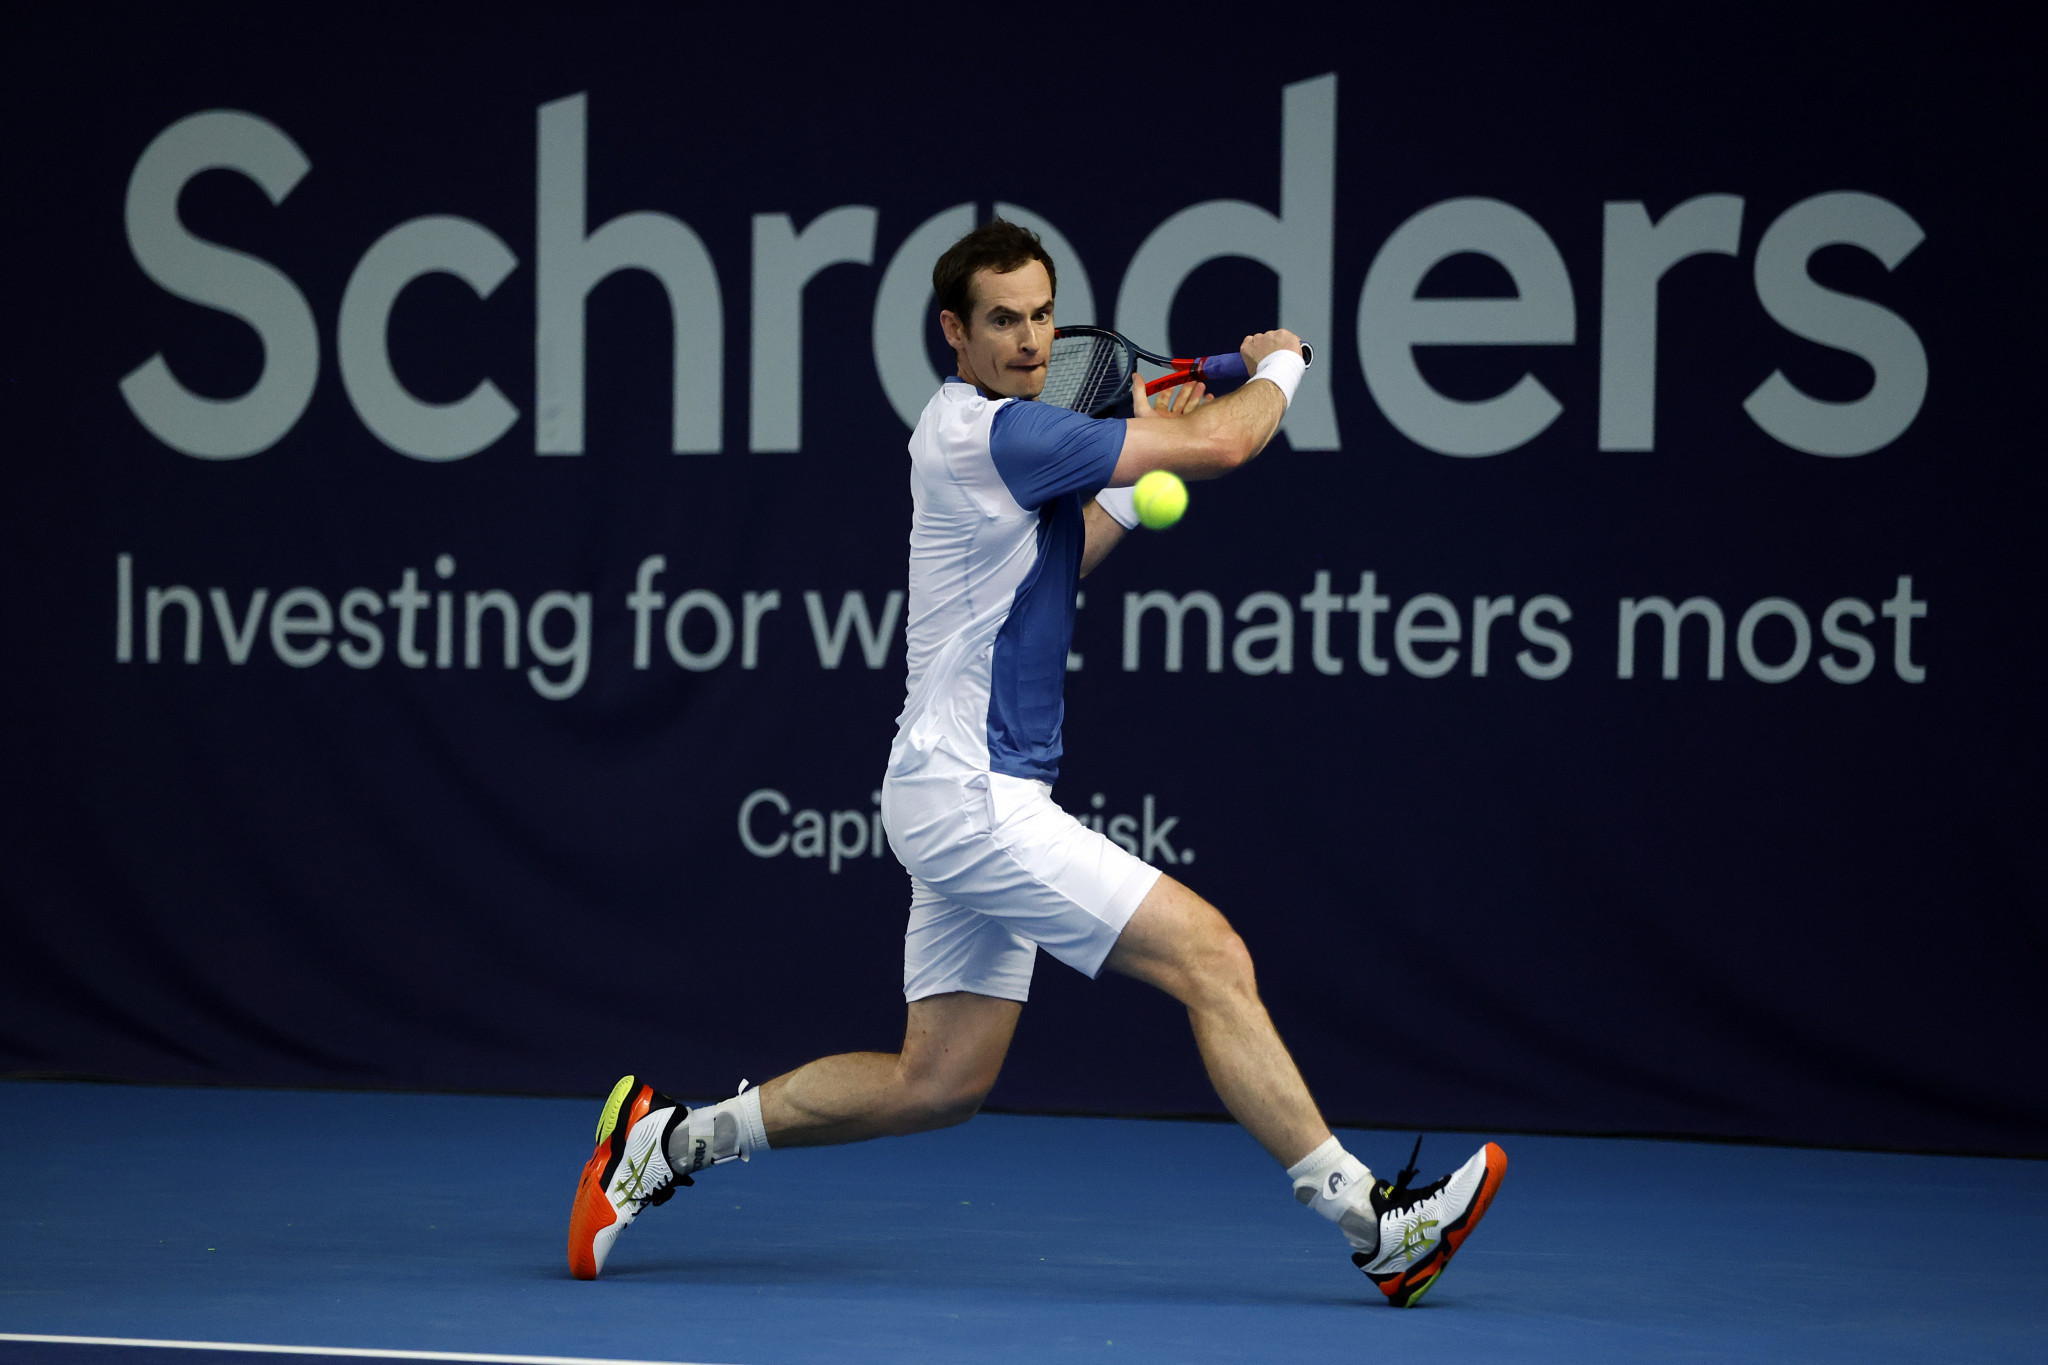 Murray expresses safety fears over packed tennis schedule